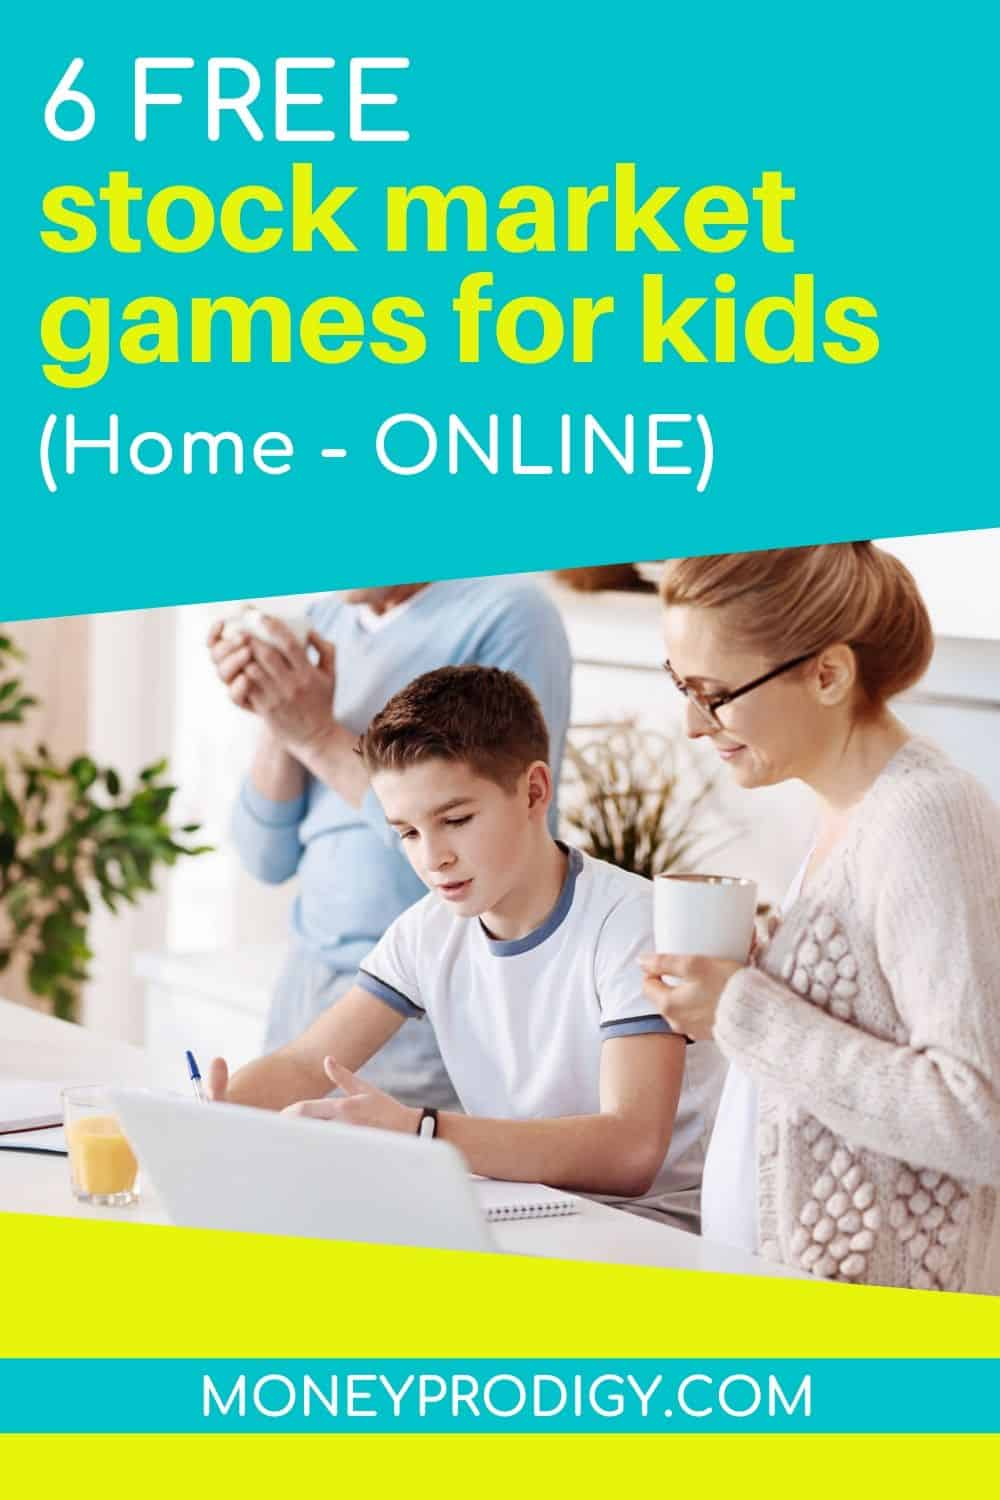 """teen child with his mother working on investing game online, text overlay """"6 free stock market games for kids - home, online"""""""